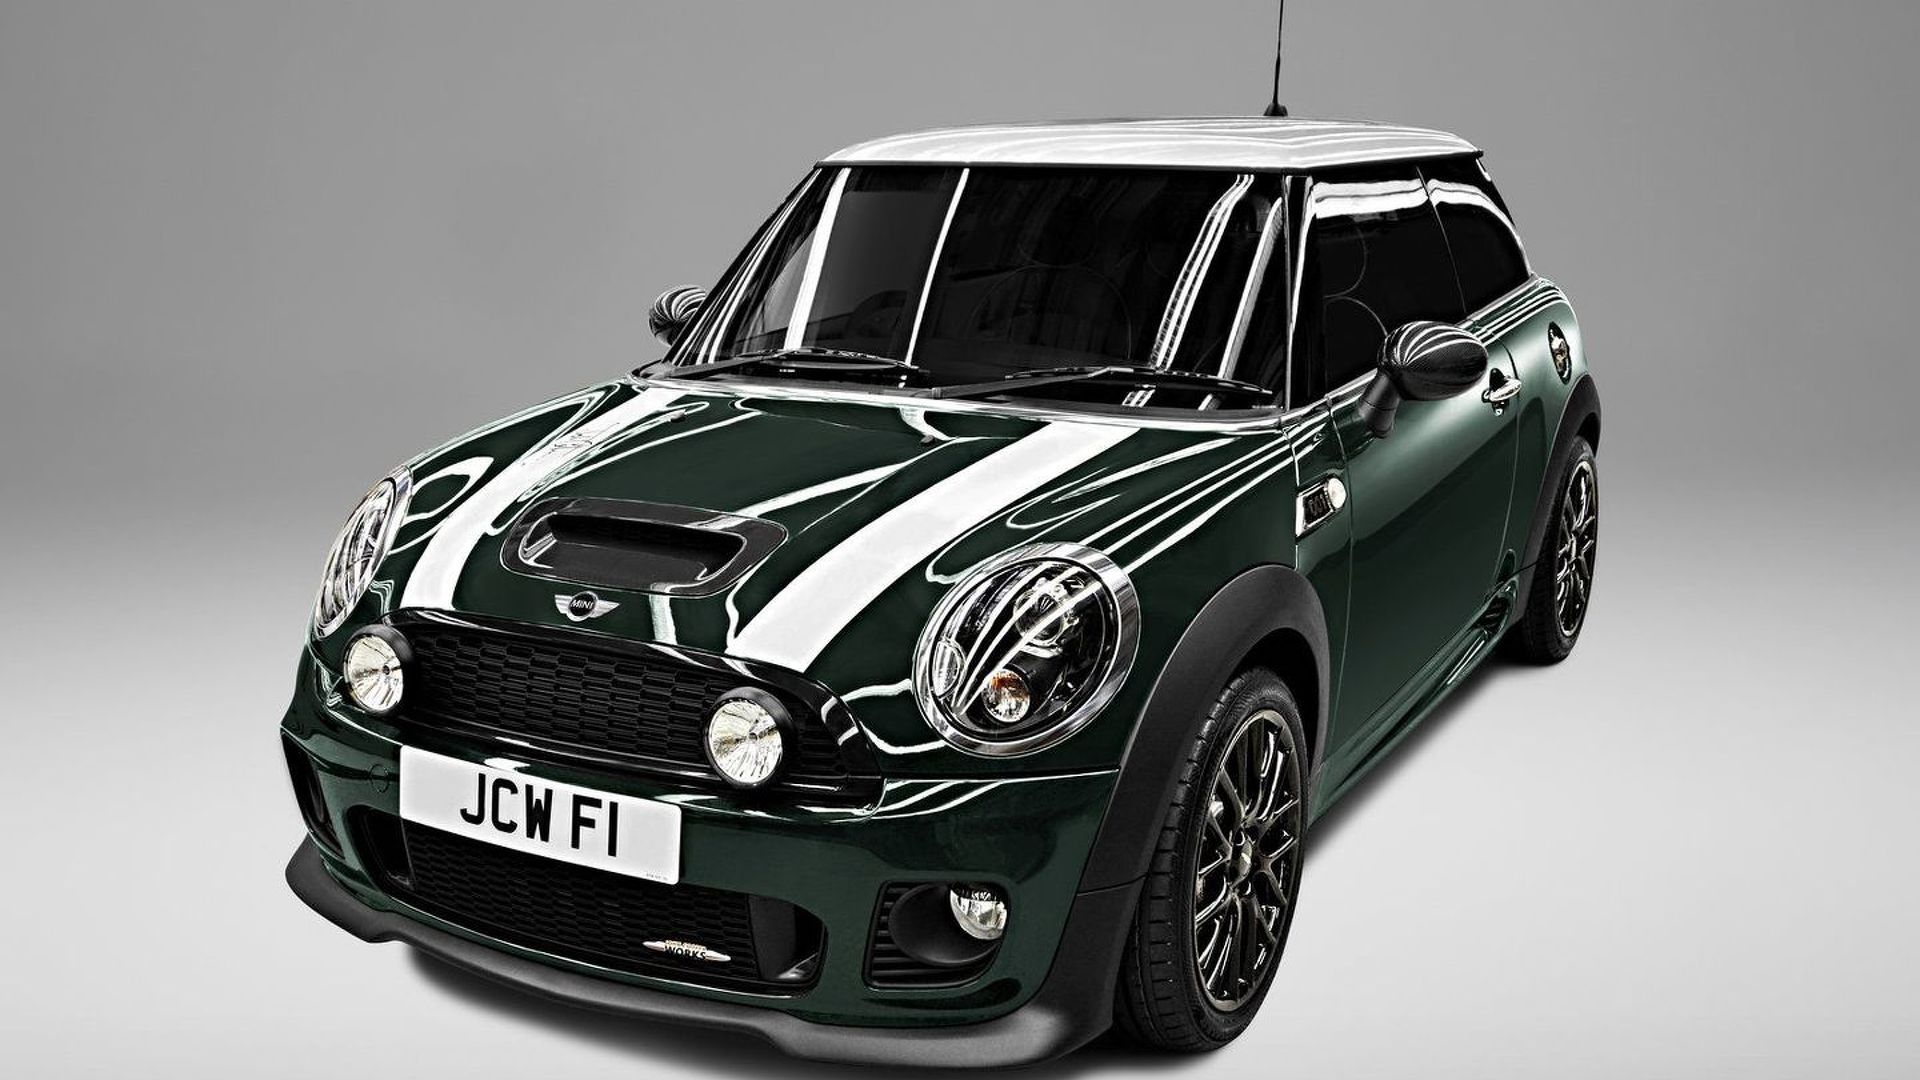 MINI JCW World Championship 50 Edition confirmed for U.S.